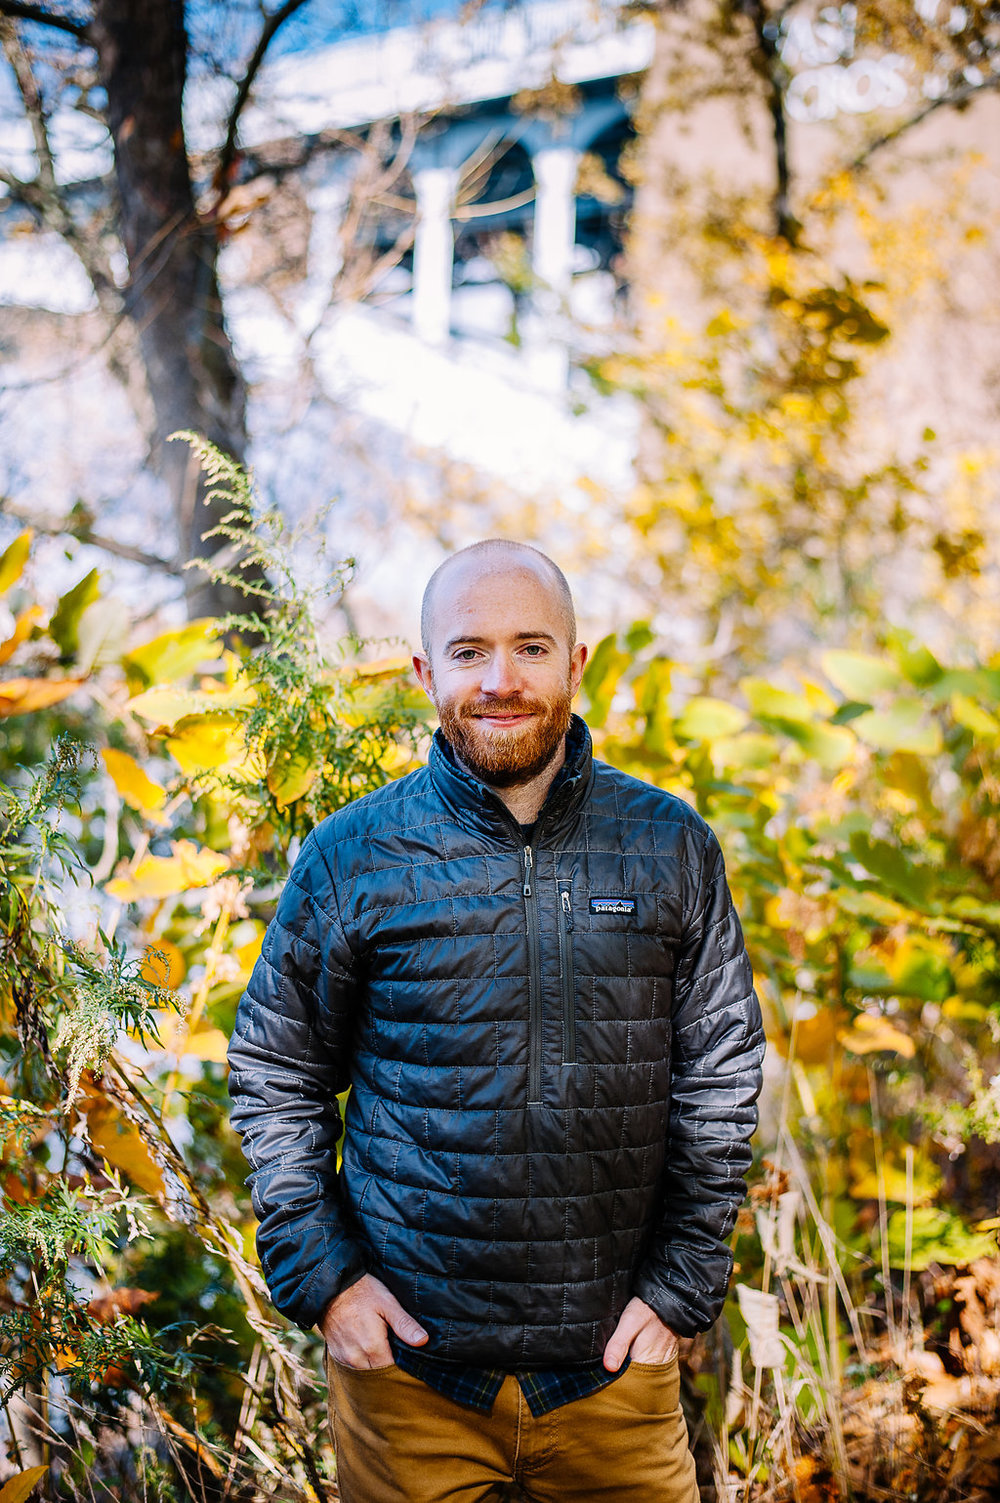 Ryan Hamilton started Hamilton Law, LLC upon completion of his residency at Fair Shake in September 2017.